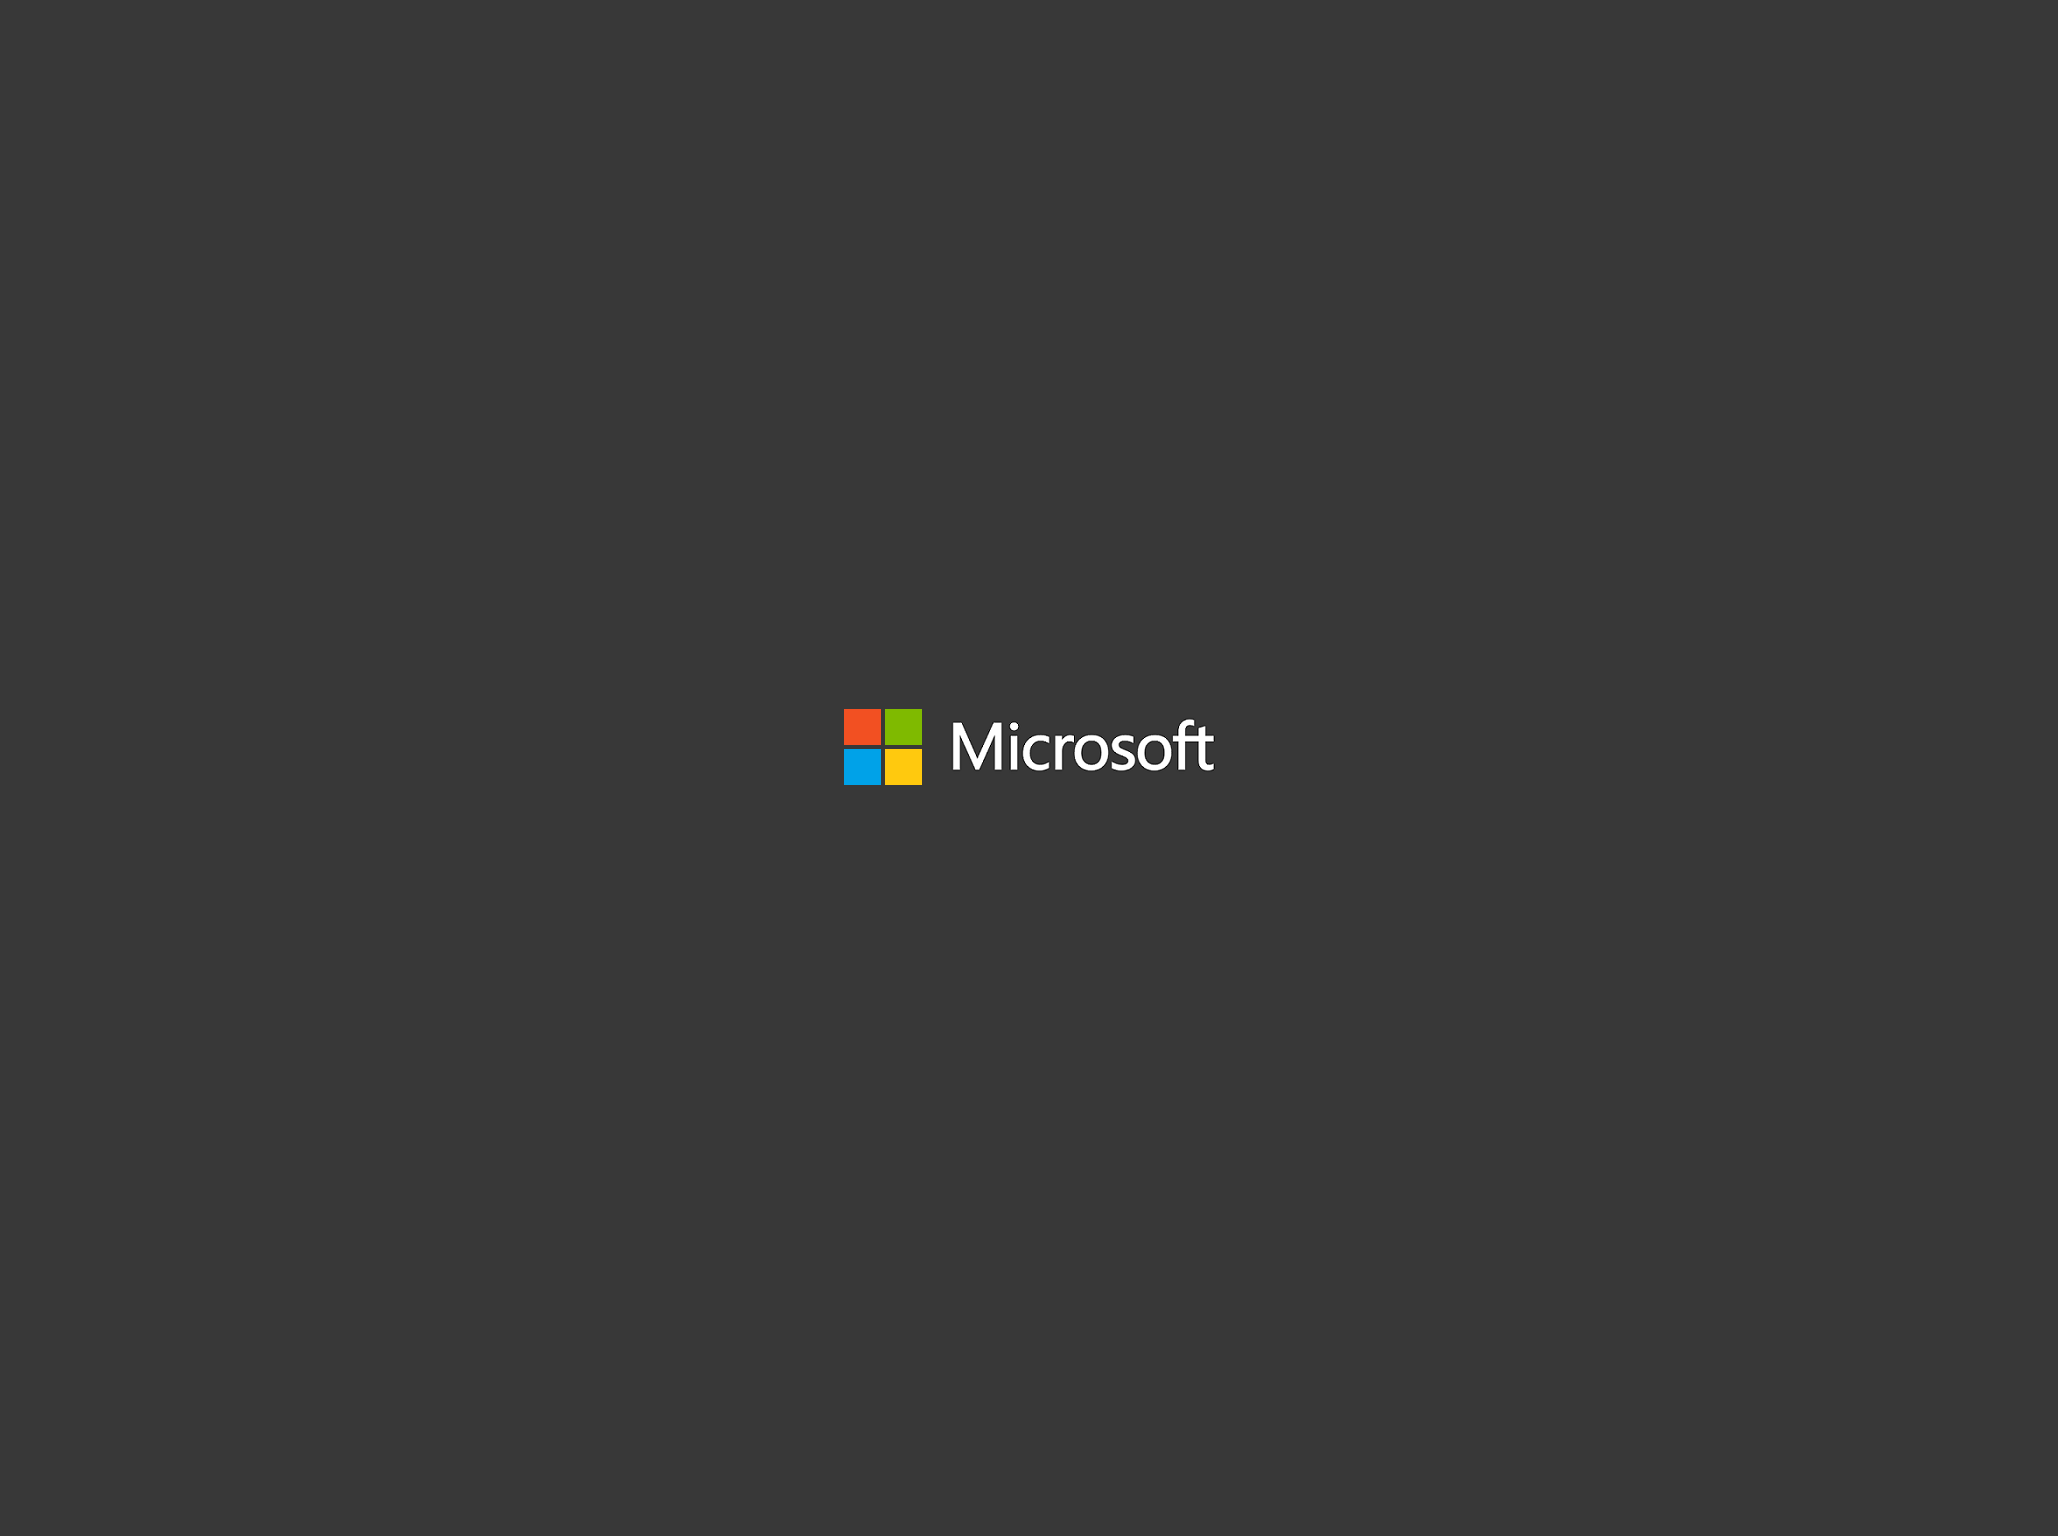 Microsoft Wallpaper 05